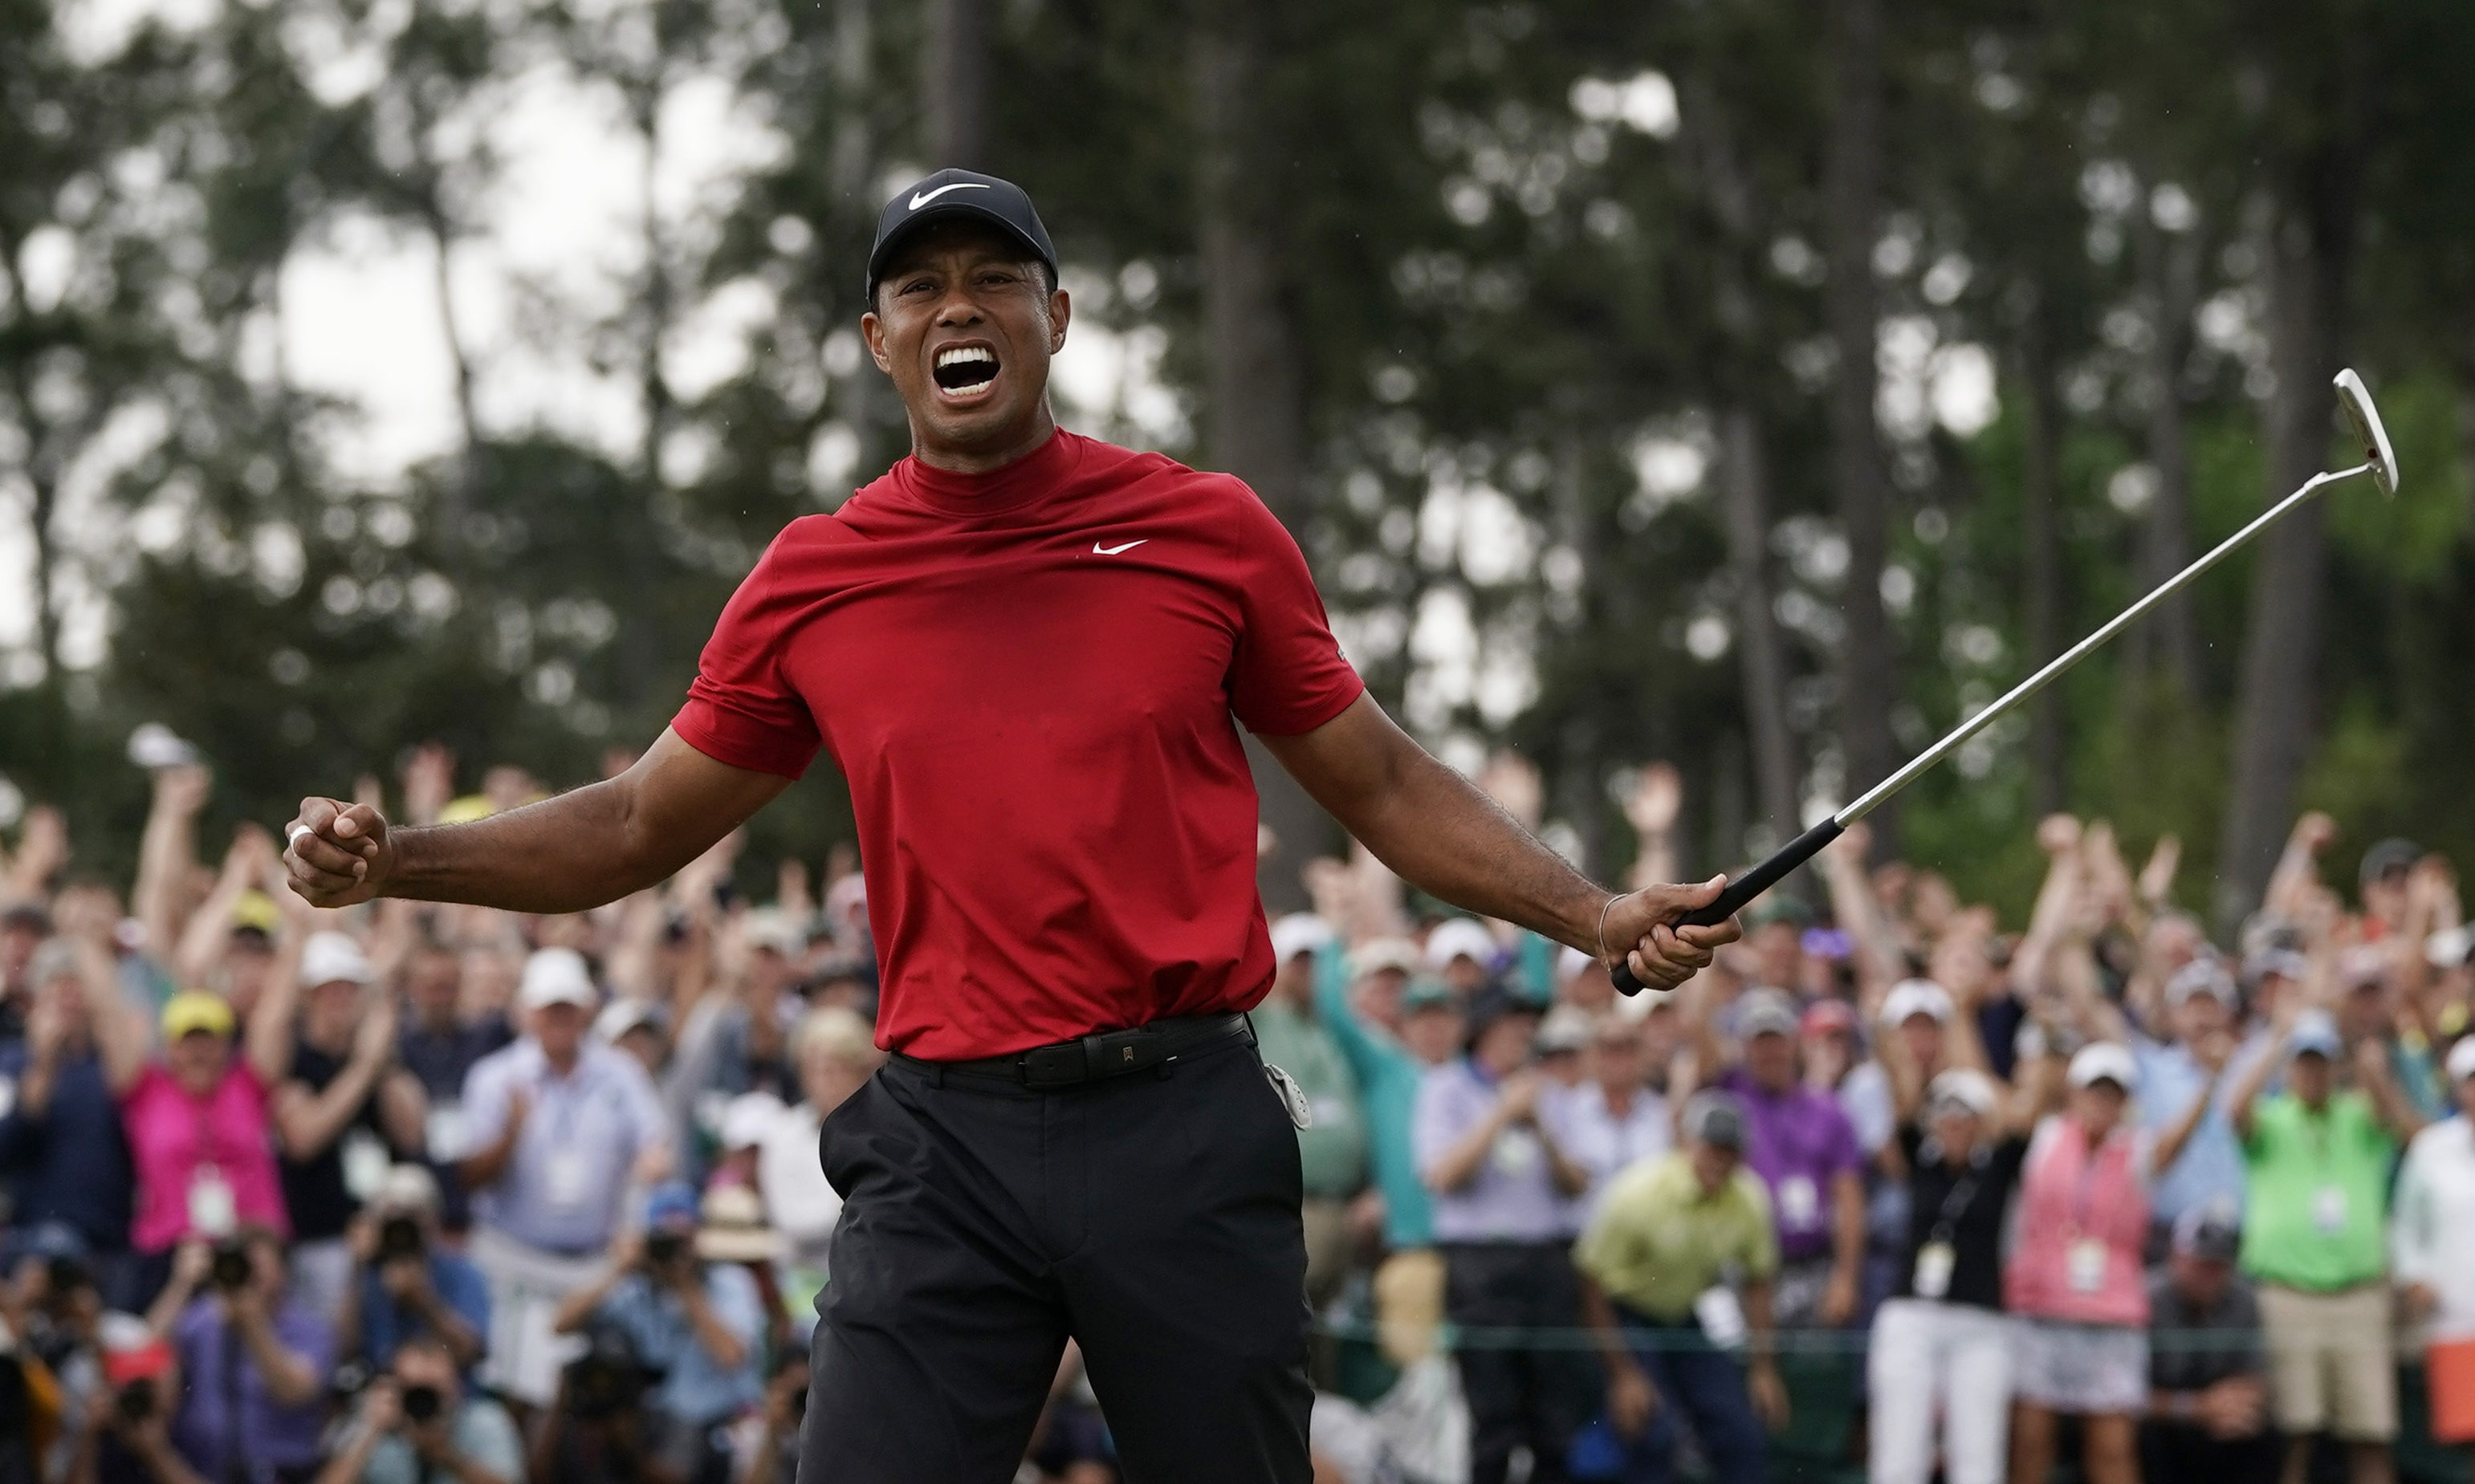 Surgeon who helped McPake also advised Tiger Woods